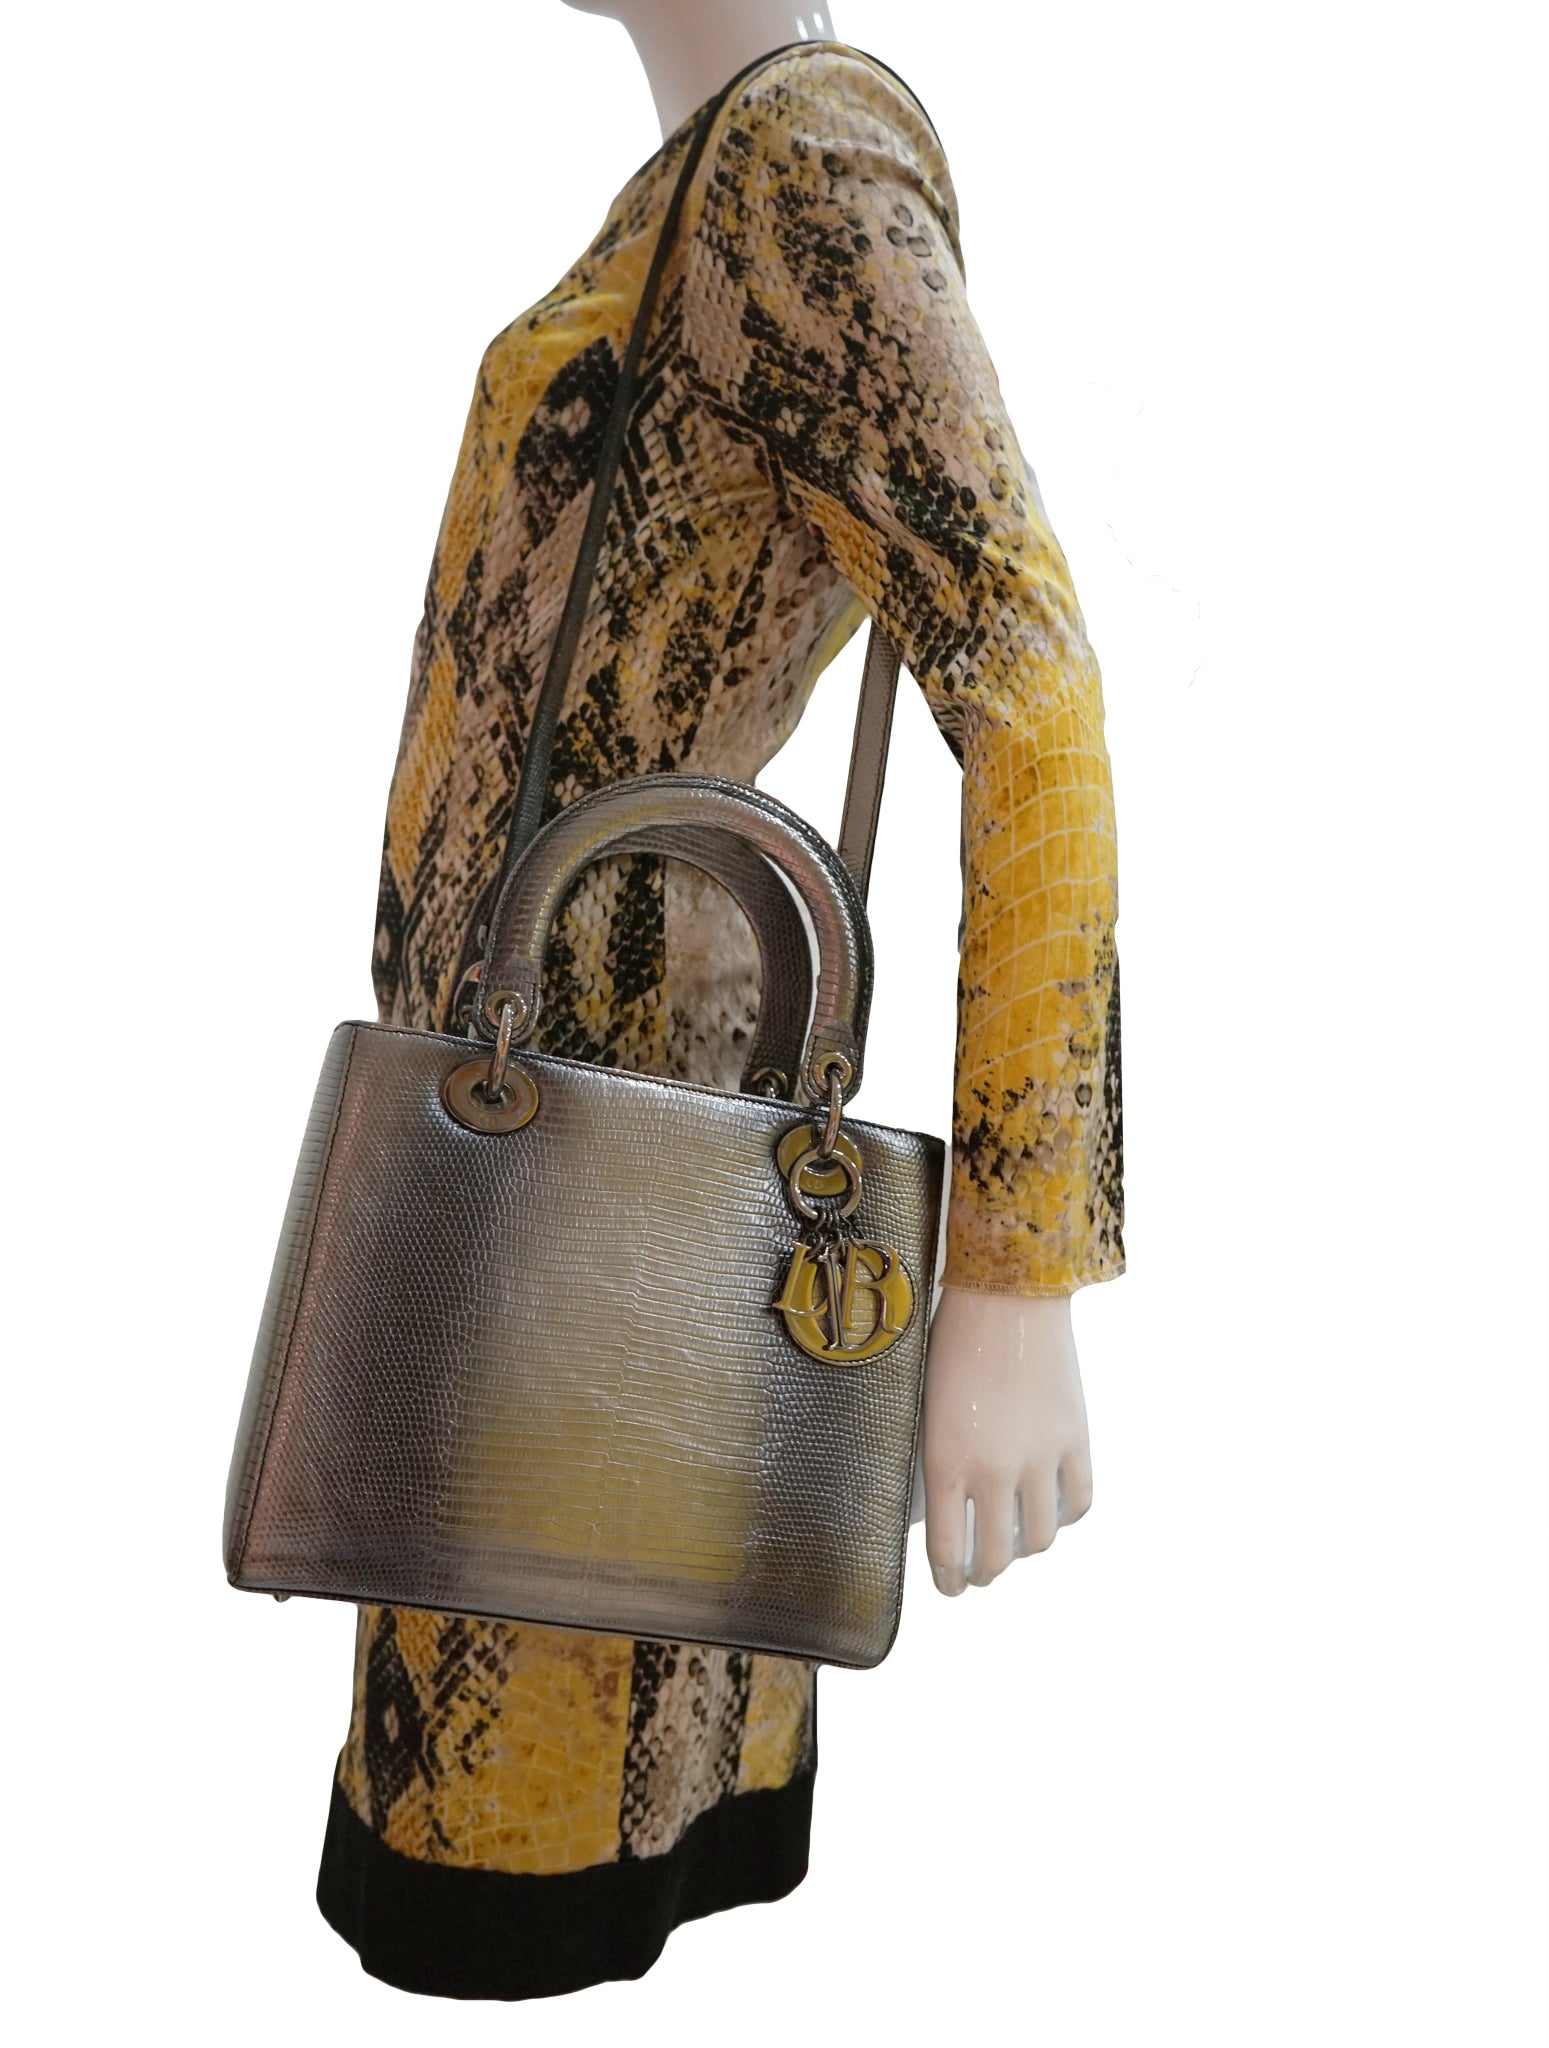 GLAZED LIZARD LEATHER LADY DIOR BAG